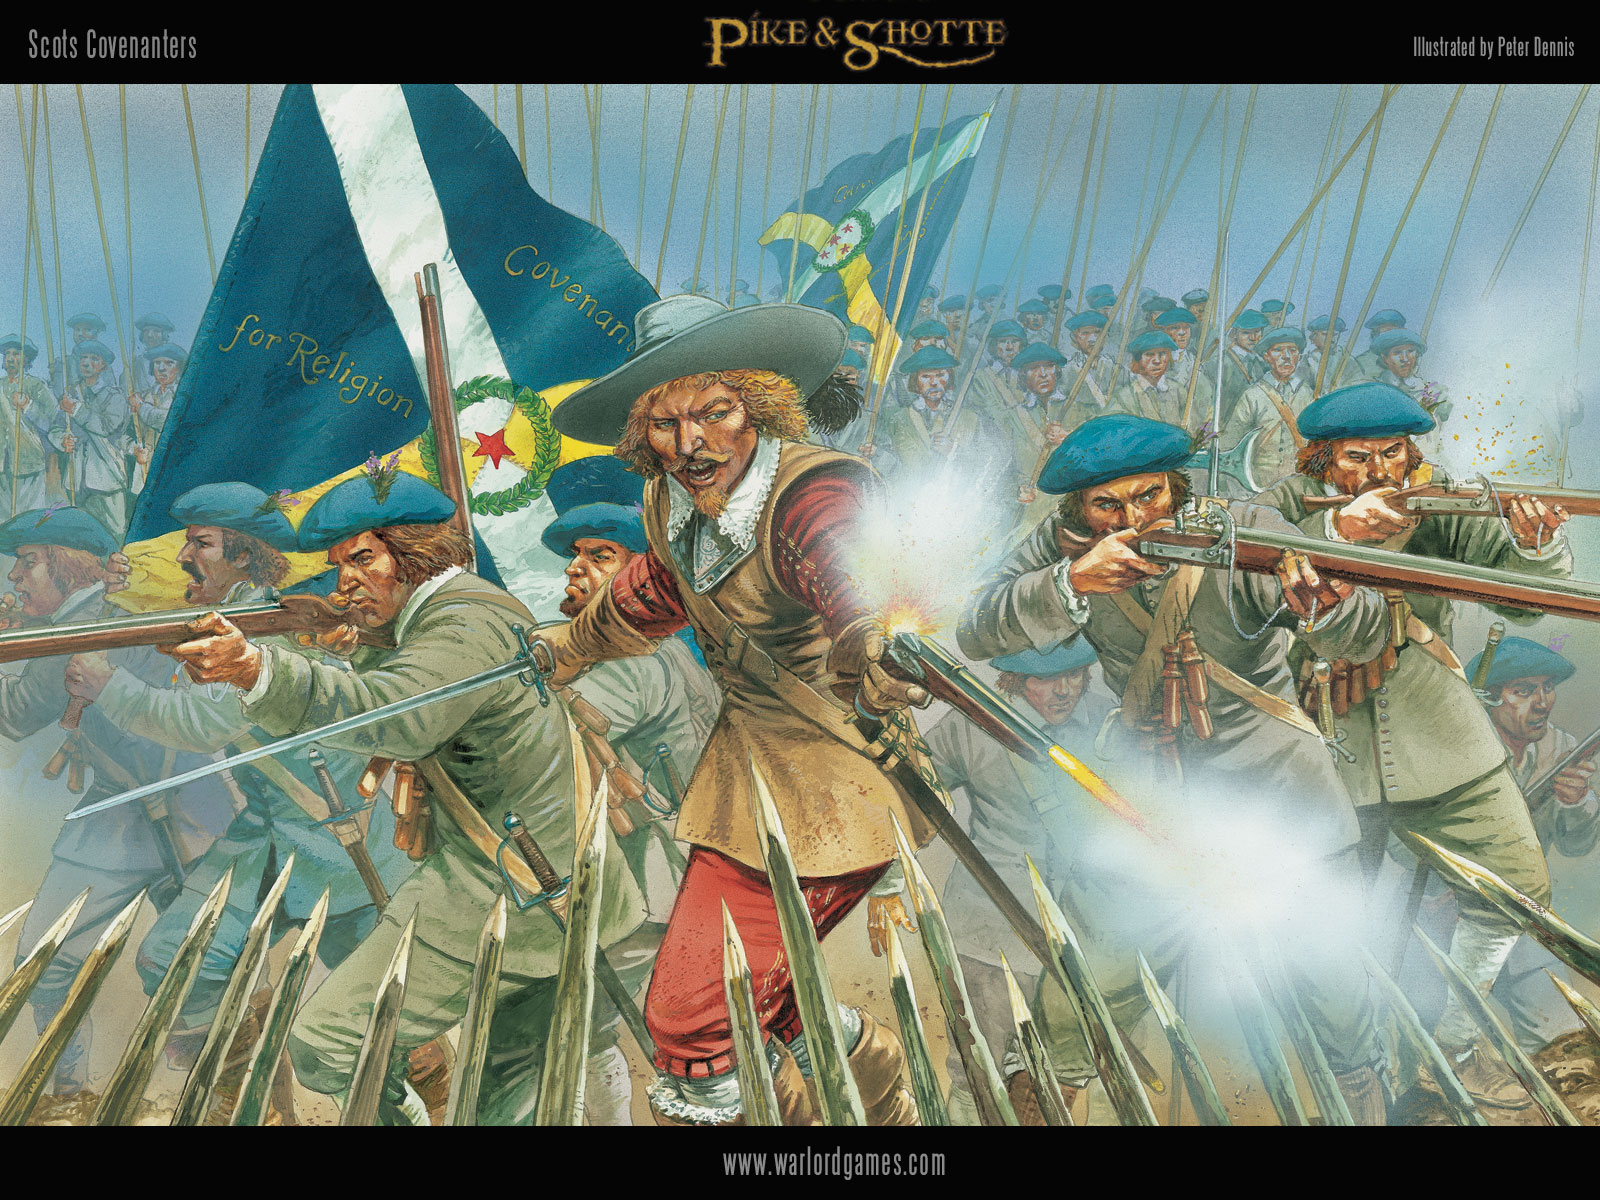 Illustrations P&S Covenanter-wallpaper